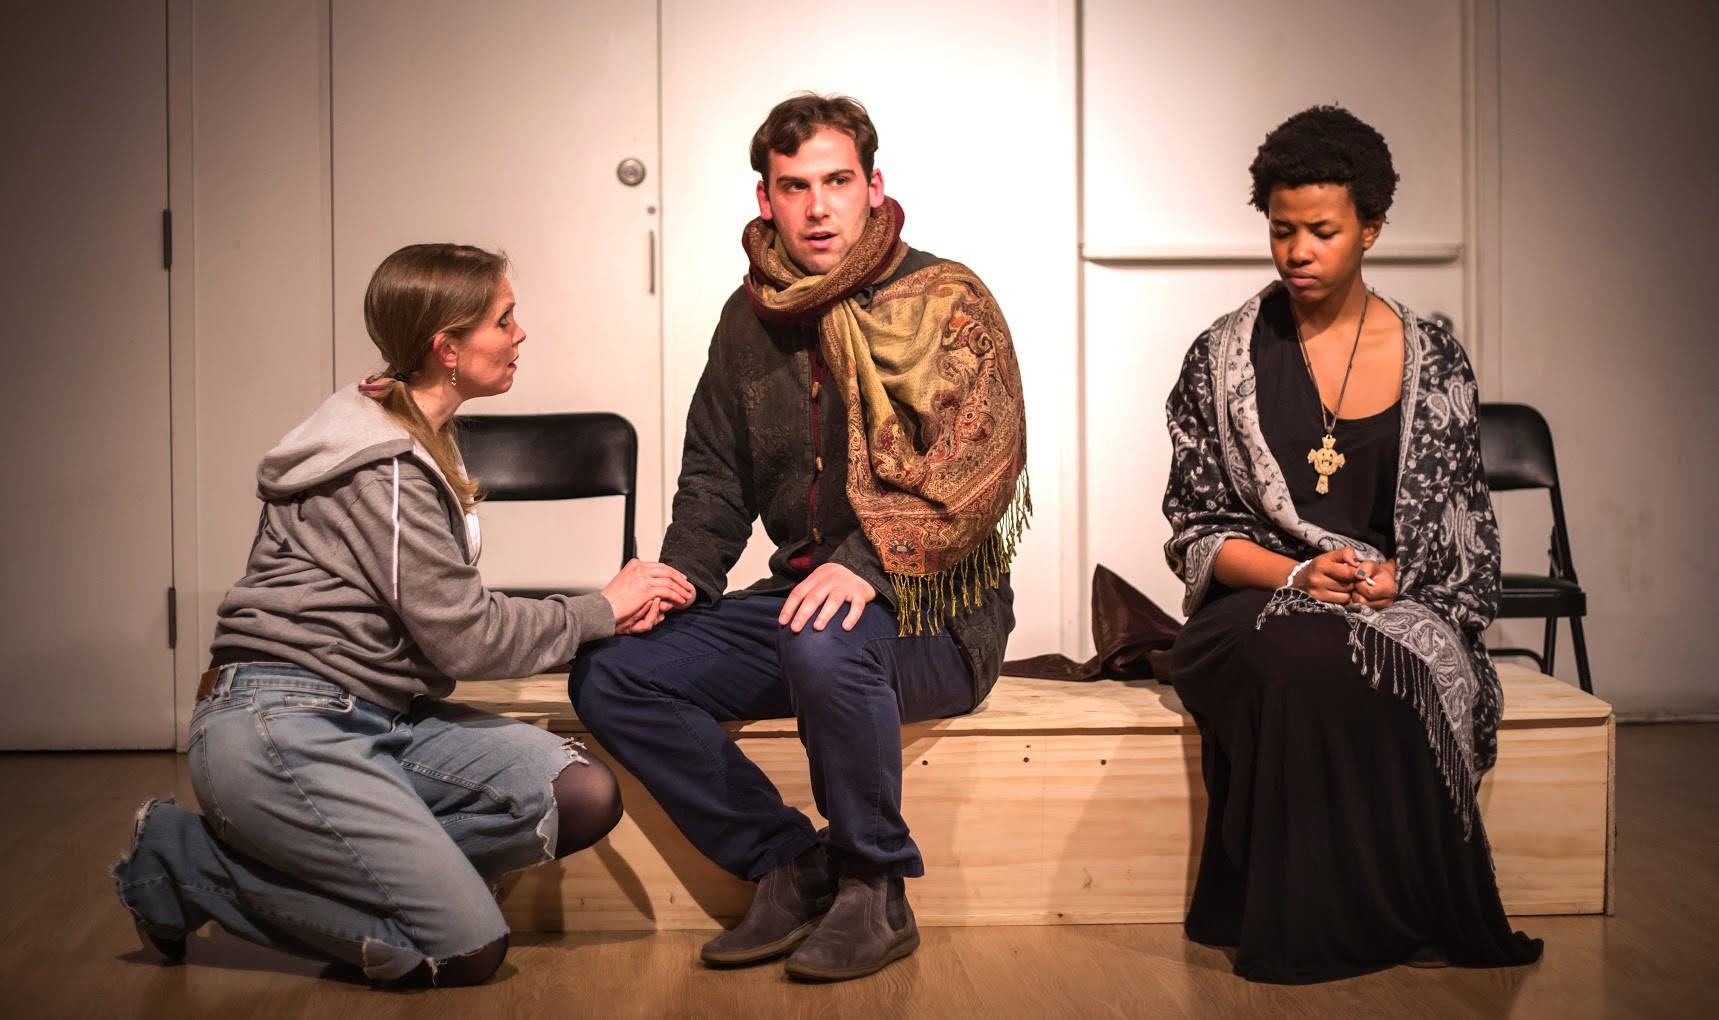 Kitty Mortland as Aumerle, Morgan Hooper as Richard II, Kineta kunutu as bishop Photography by John robert hoffman